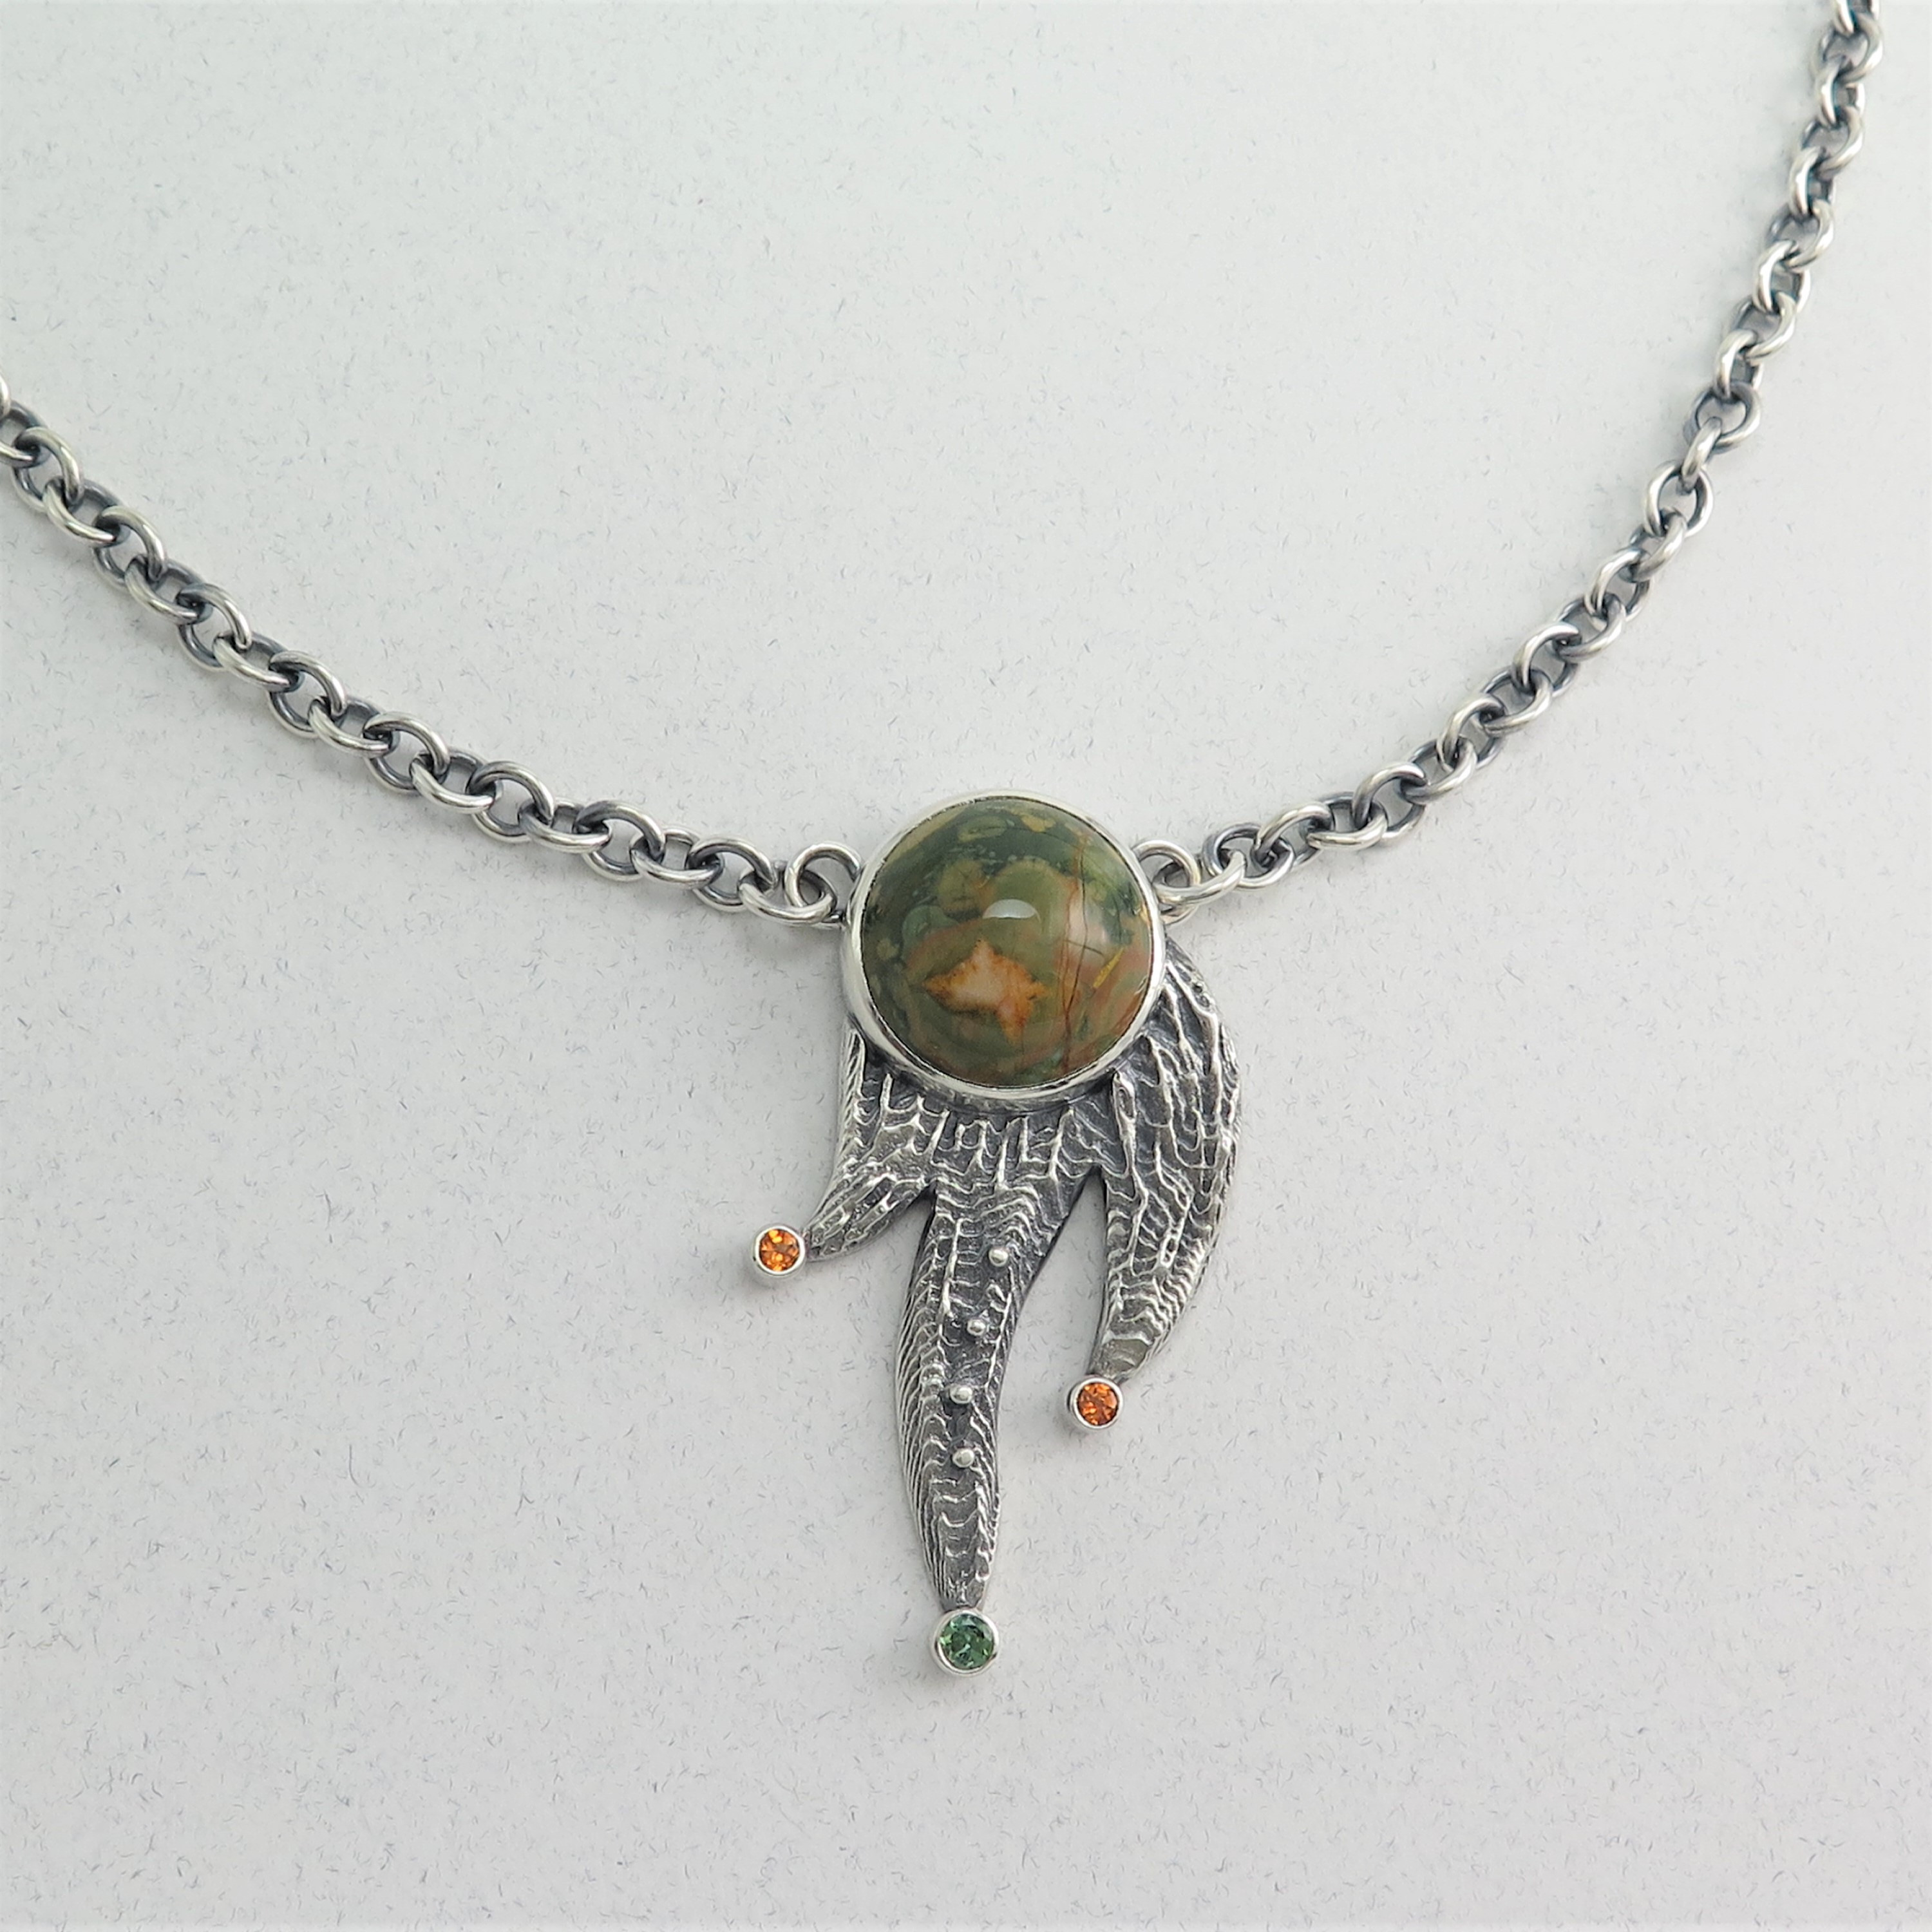 Cephalopoda Necklace